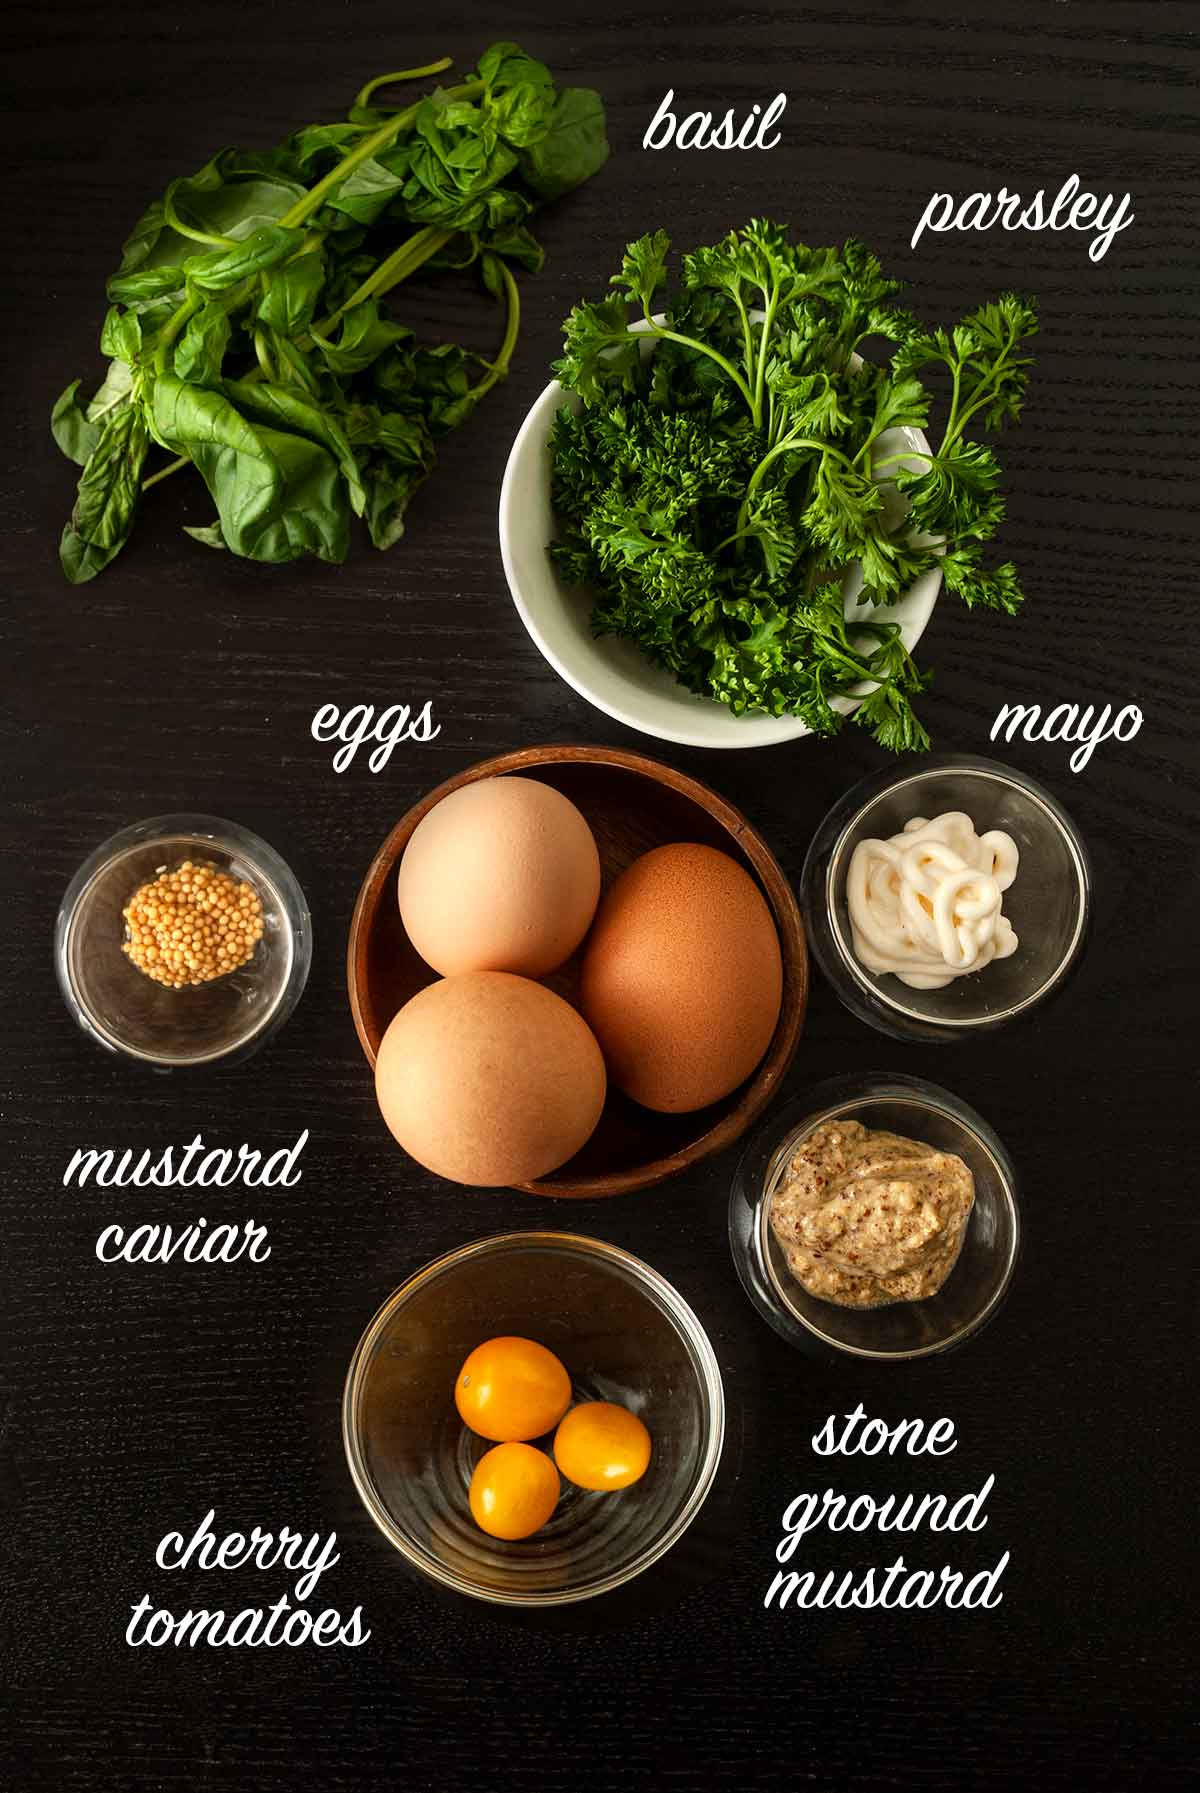 A group of ingredients on a black table with text labels.